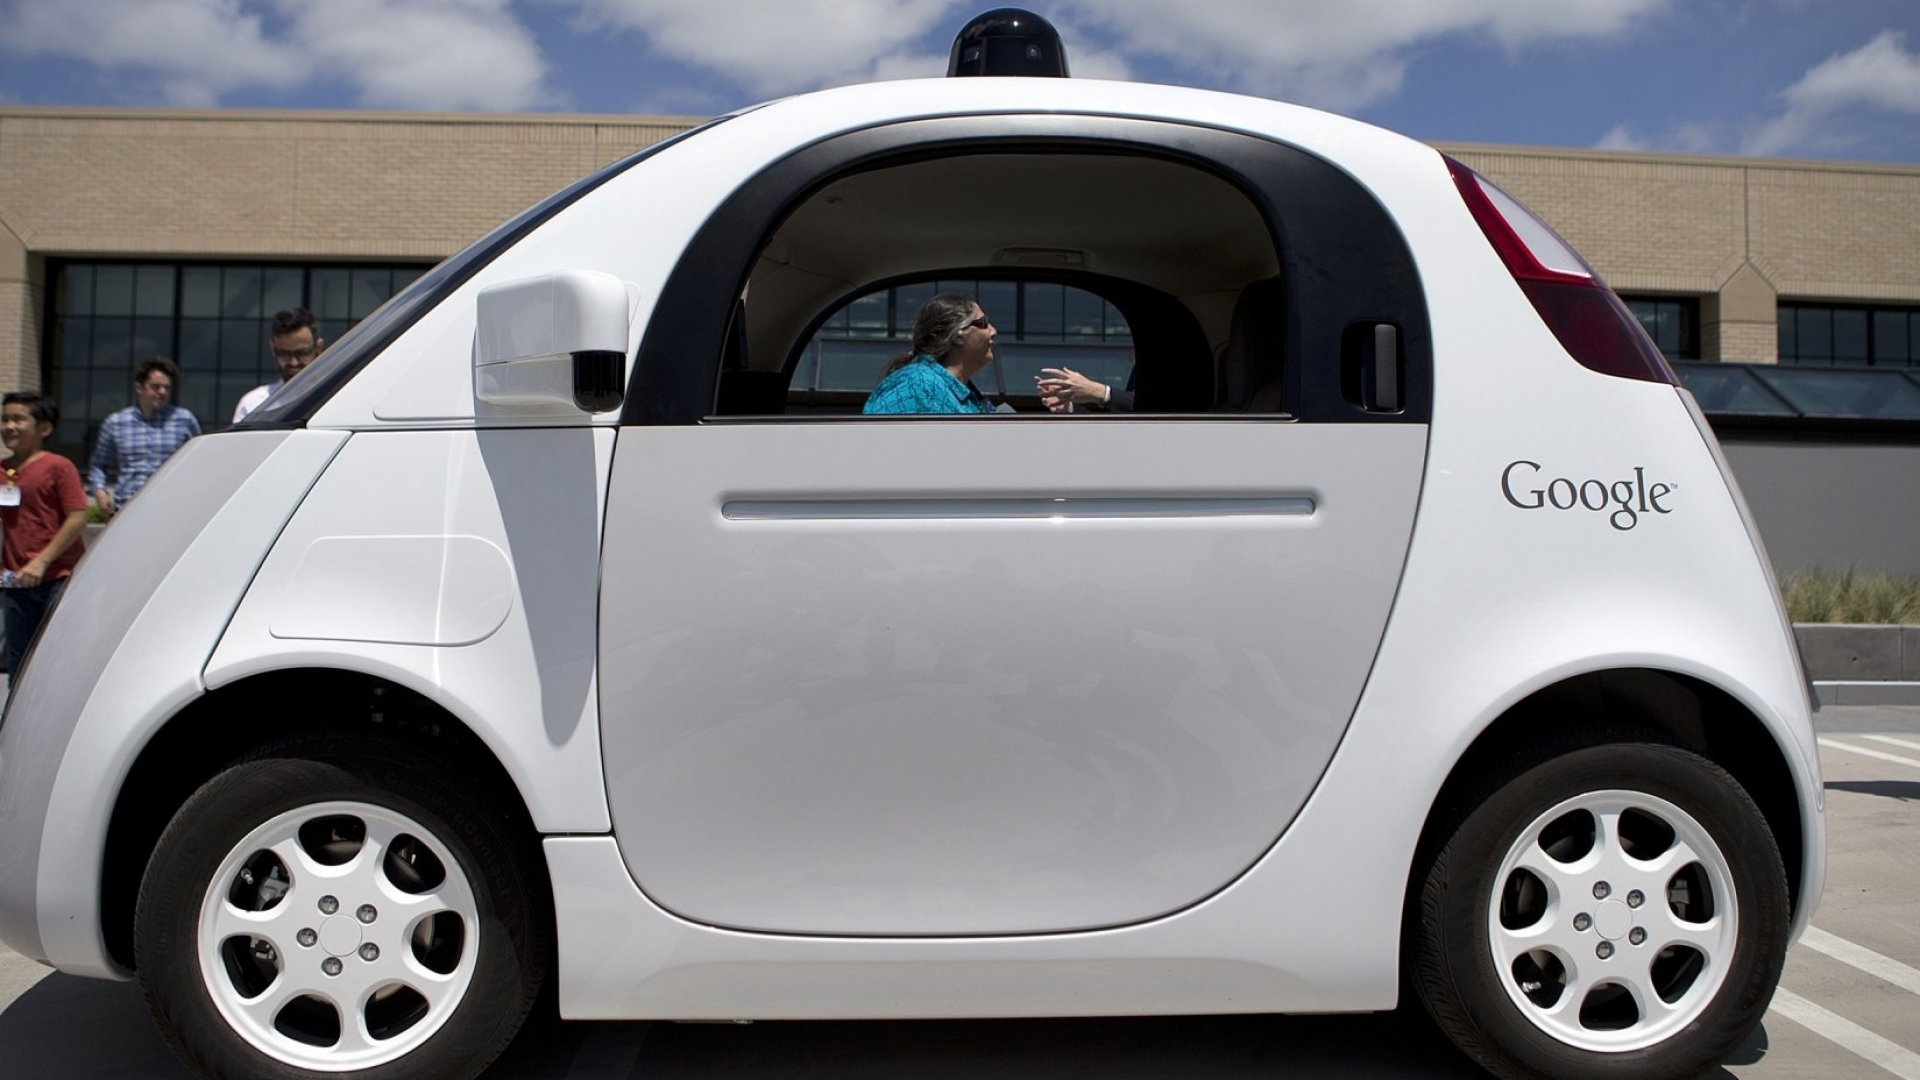 Google Abandons Plans for Driverless Car, Partners With Automakers